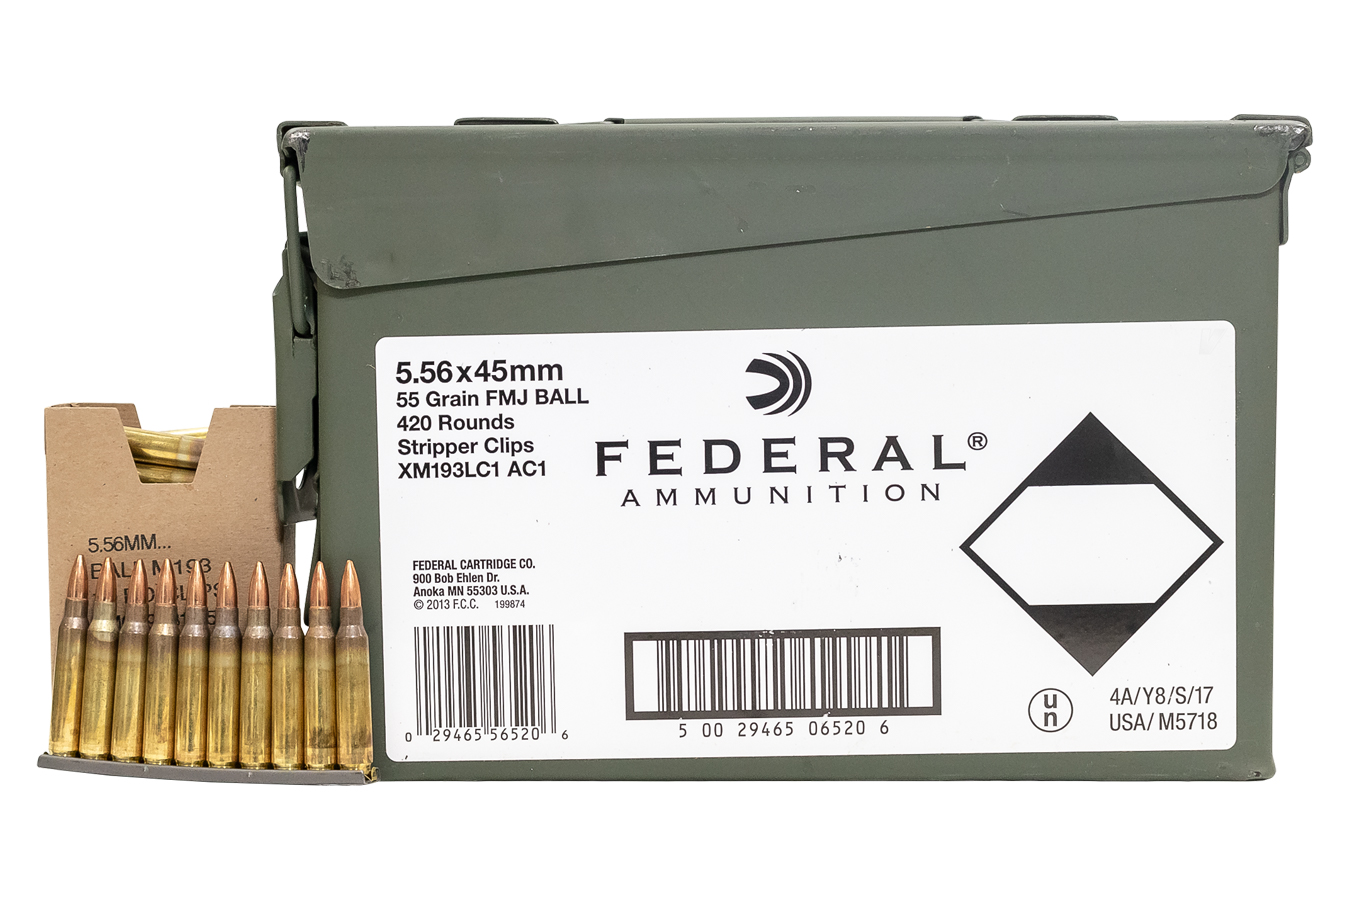 5.56MM NATO 55 GR FMJ CLIPPED M19A AMMO CAN